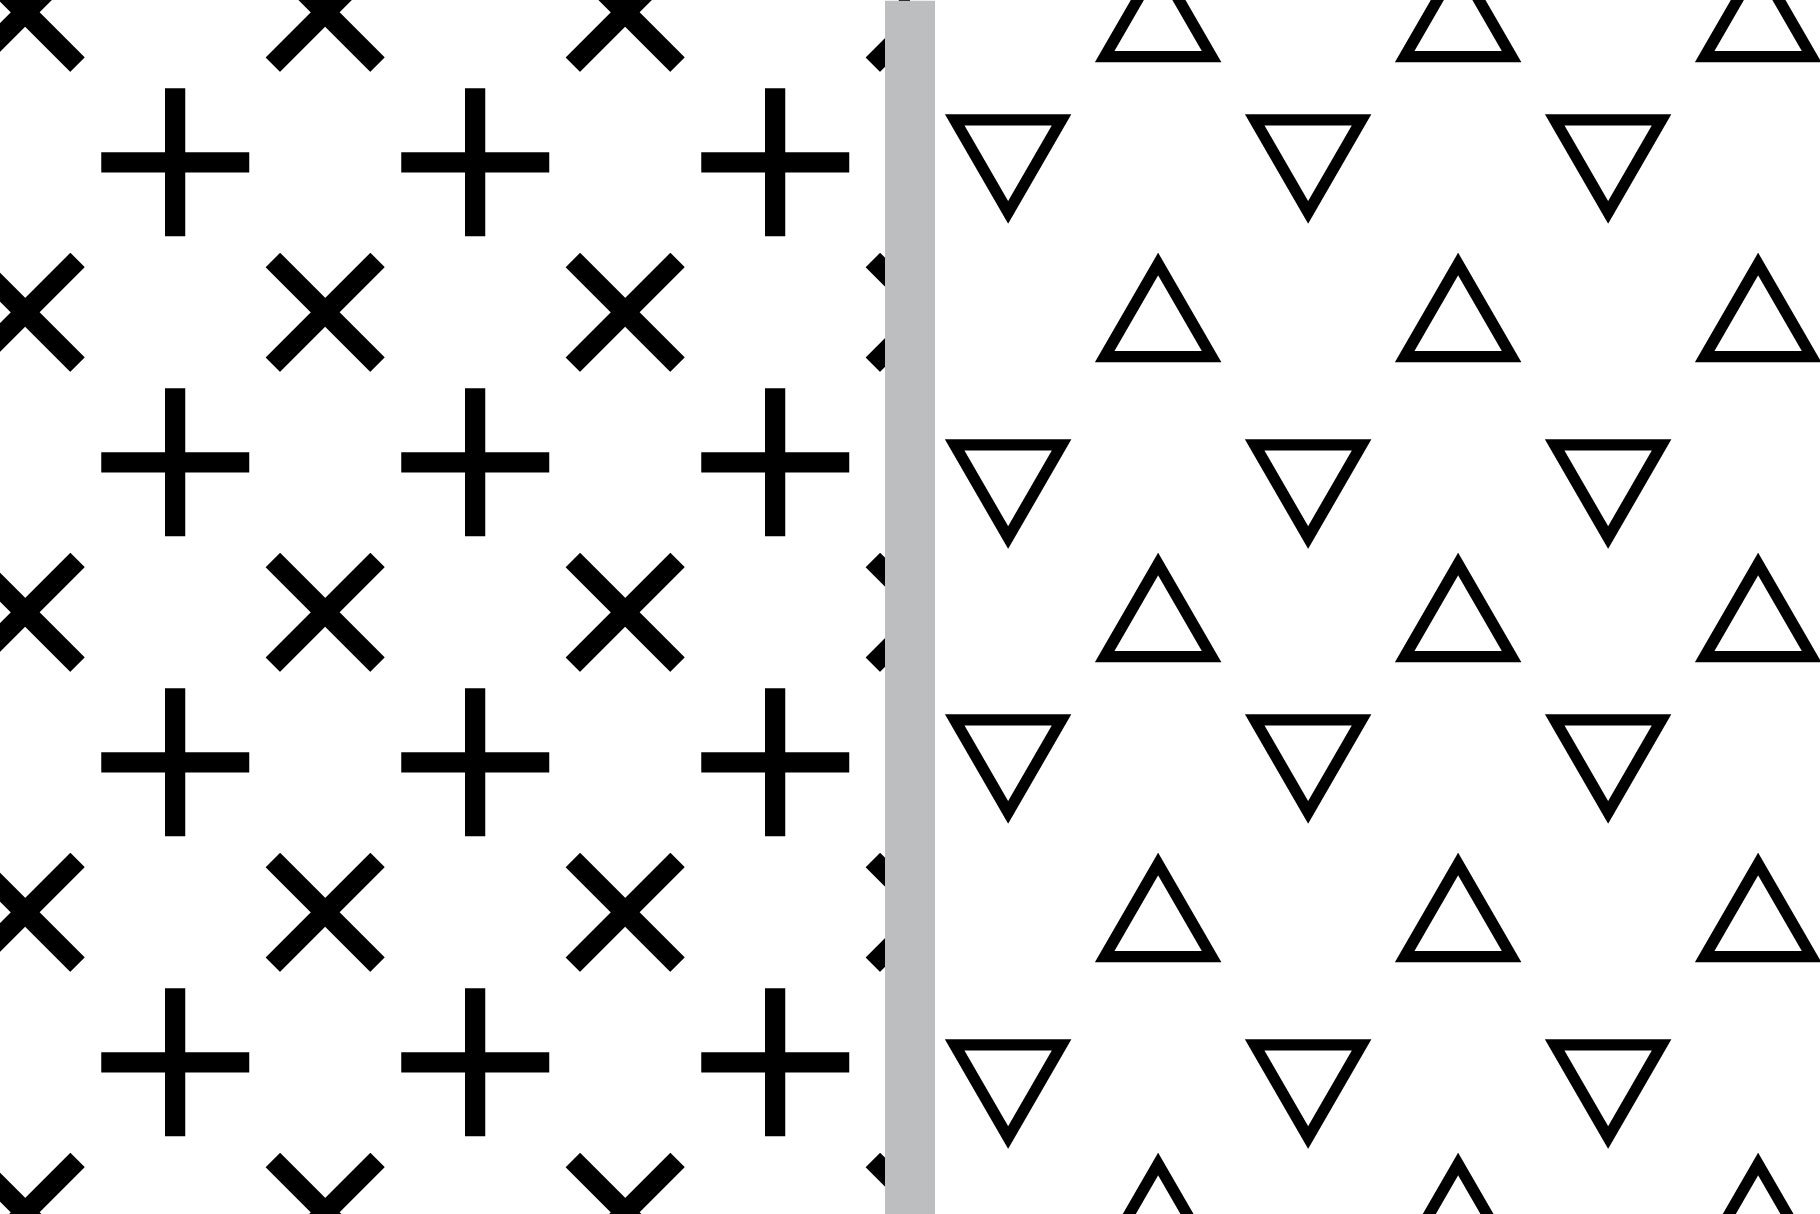 Black and White Seamless Patterns example image 6